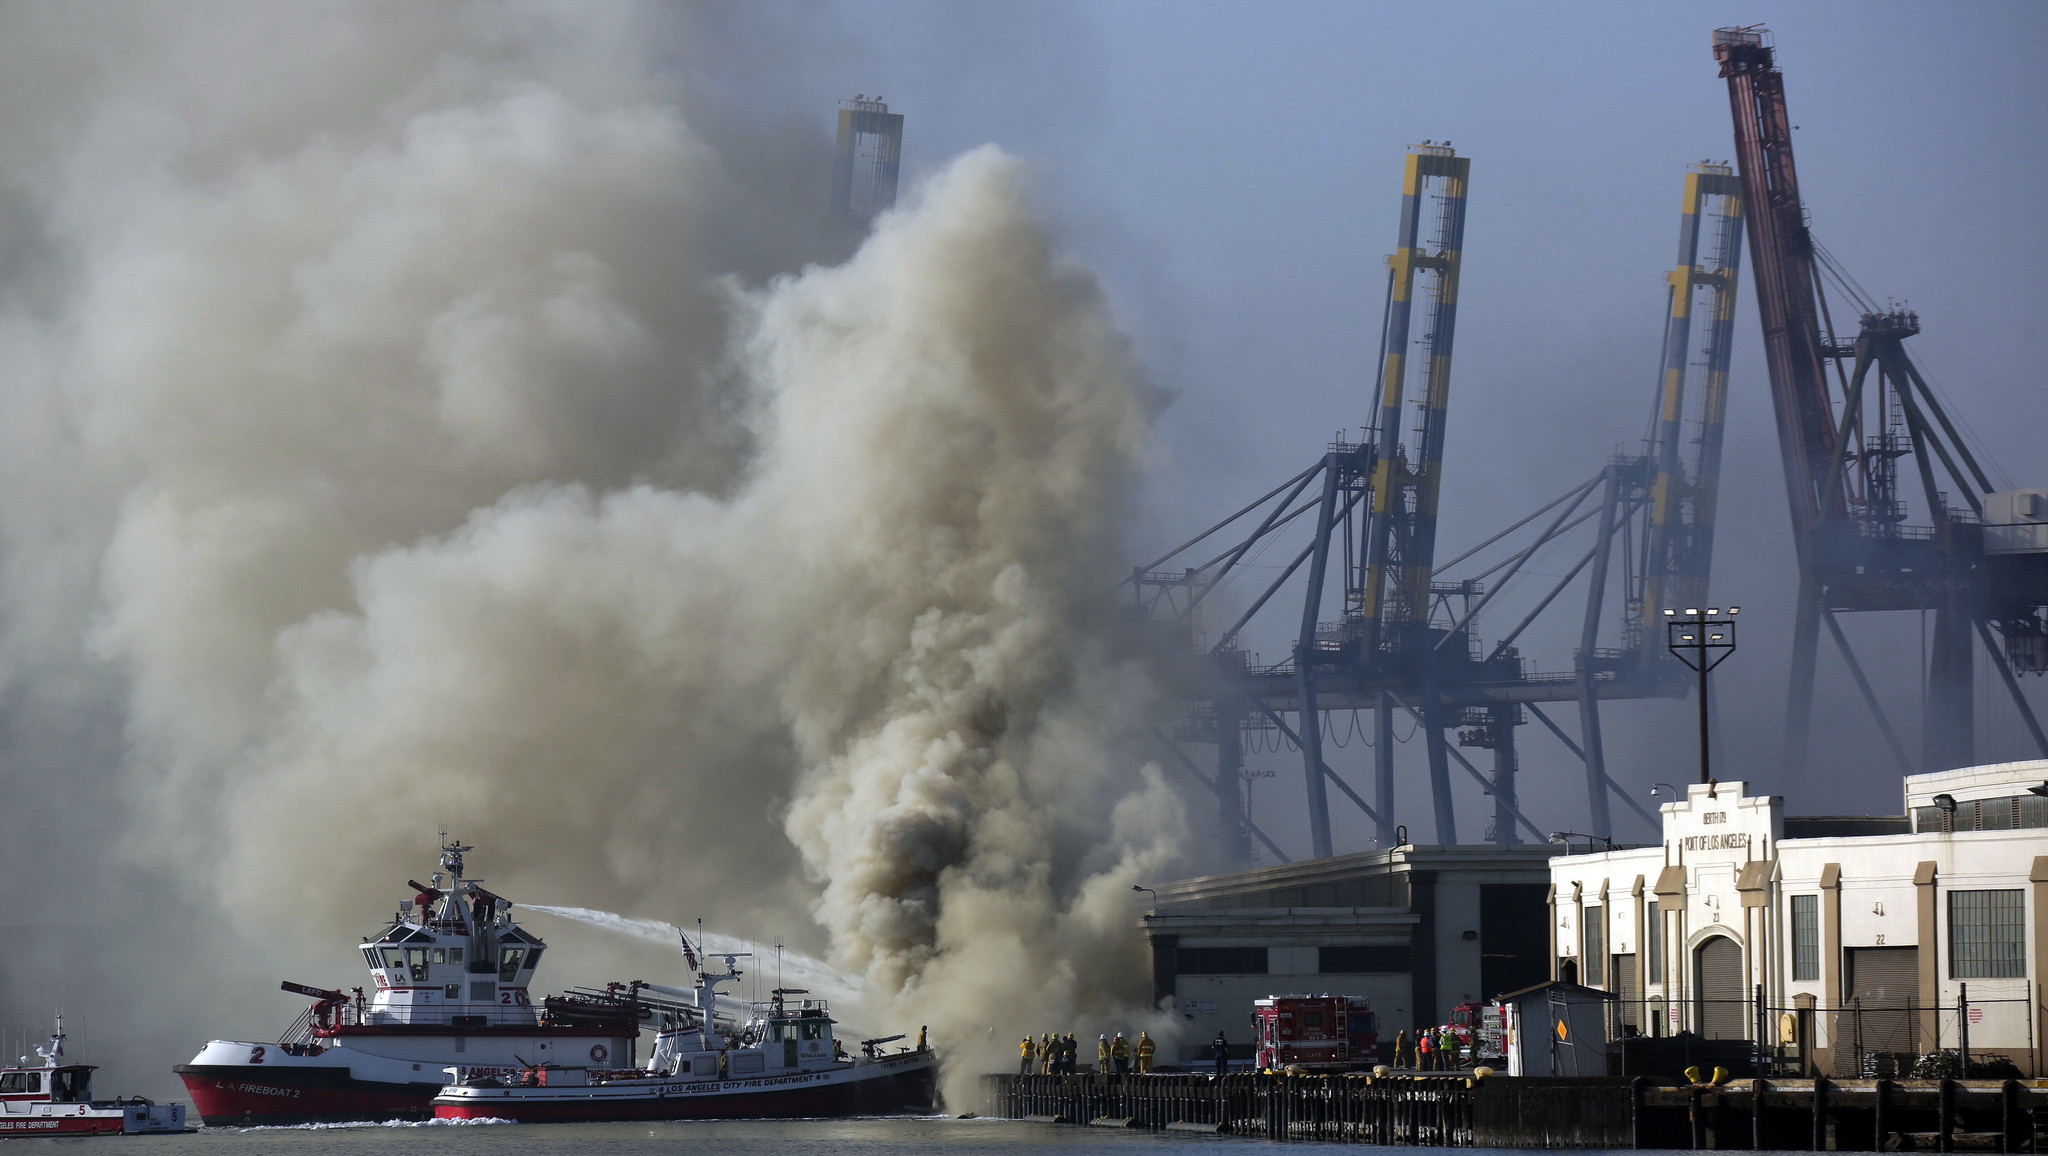 Port of L.A. fire spurs toxic-air concerns; some schools may be closed